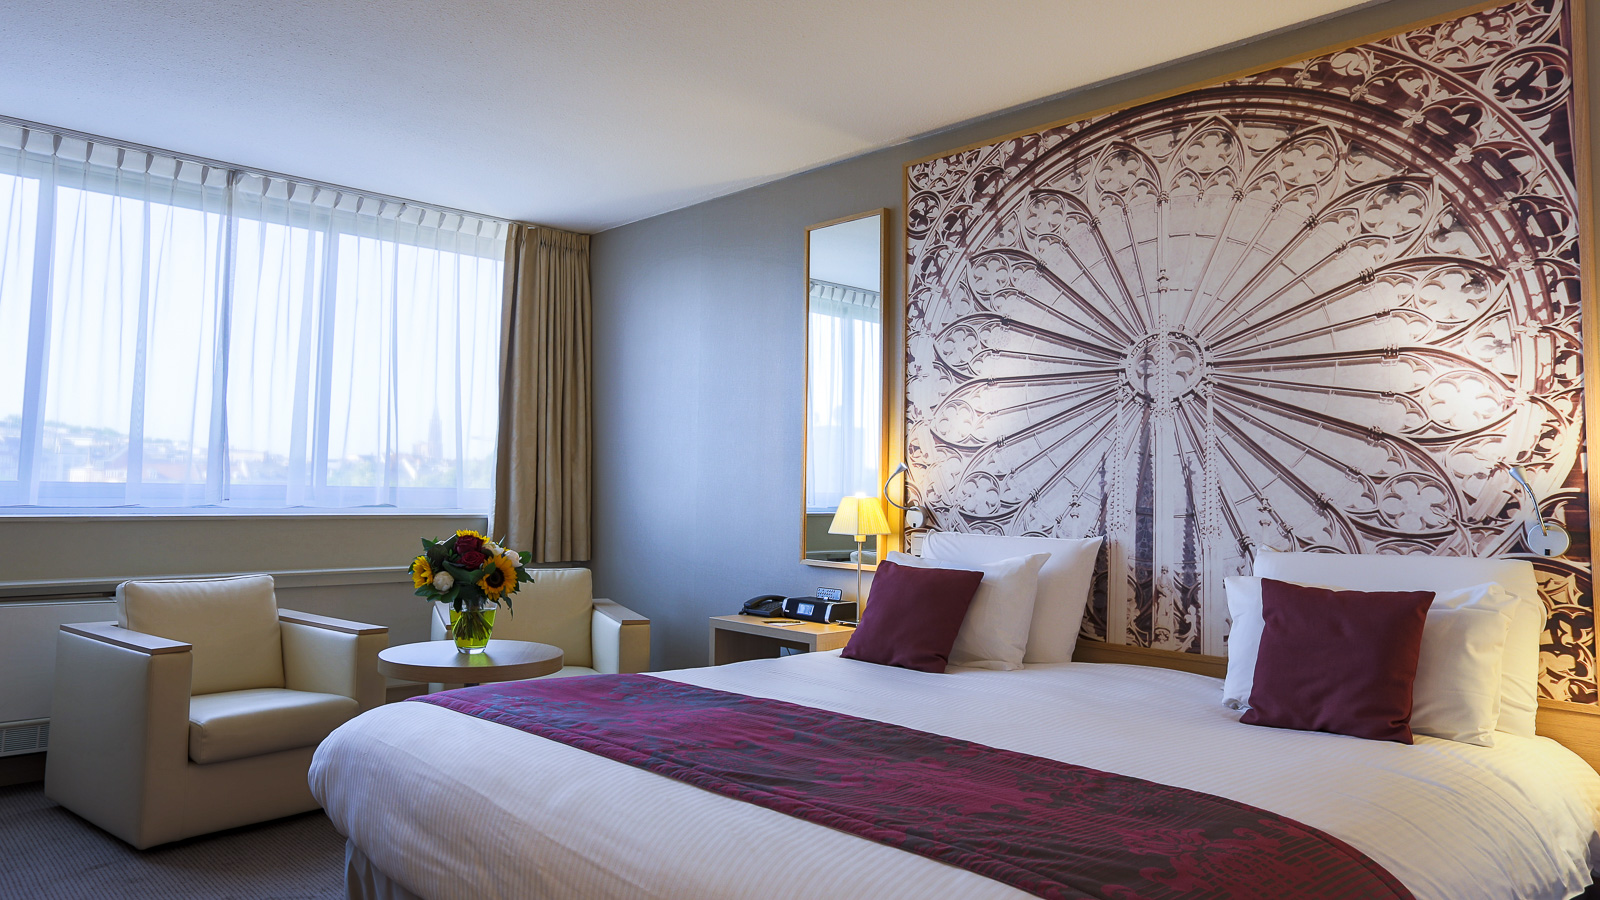 Hotels Mercure Strasbourg Palais Des Congr S For Your Seminar In